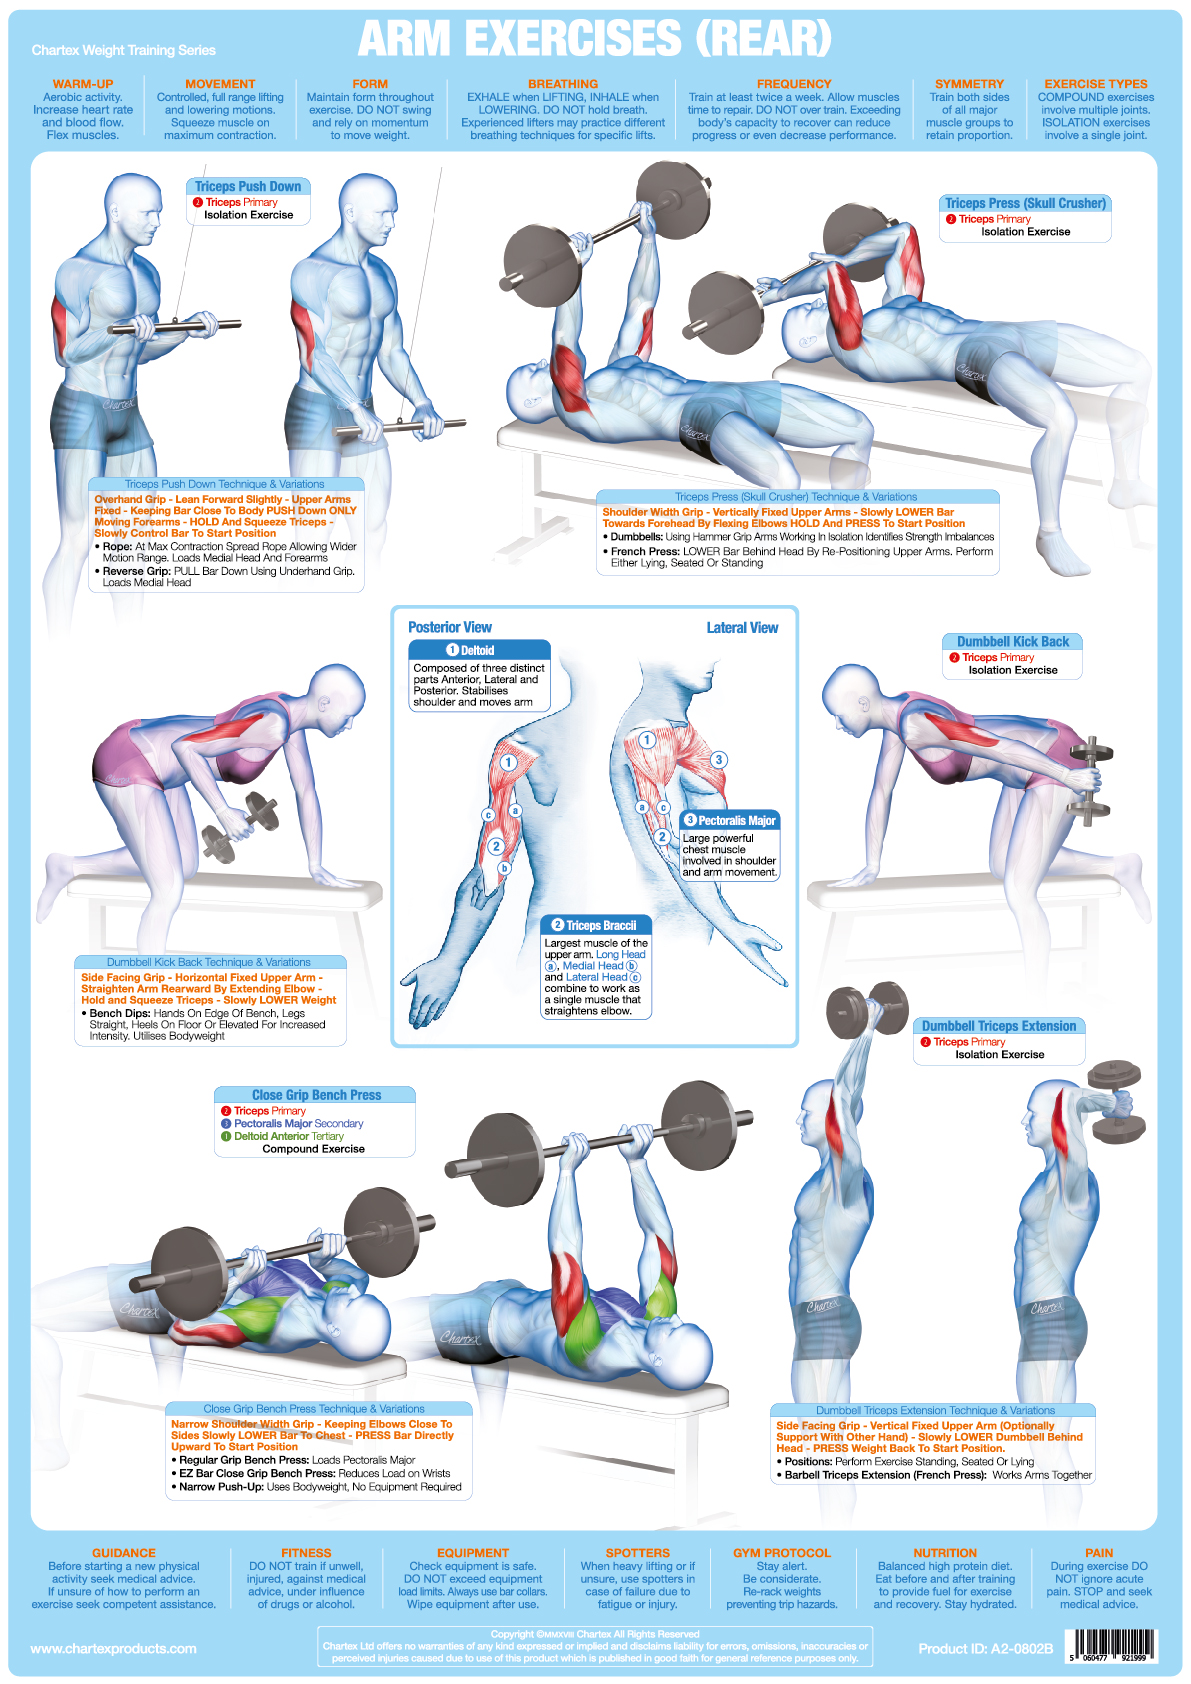 Arm Muscles (Rear) Weight Training - A1 Chart